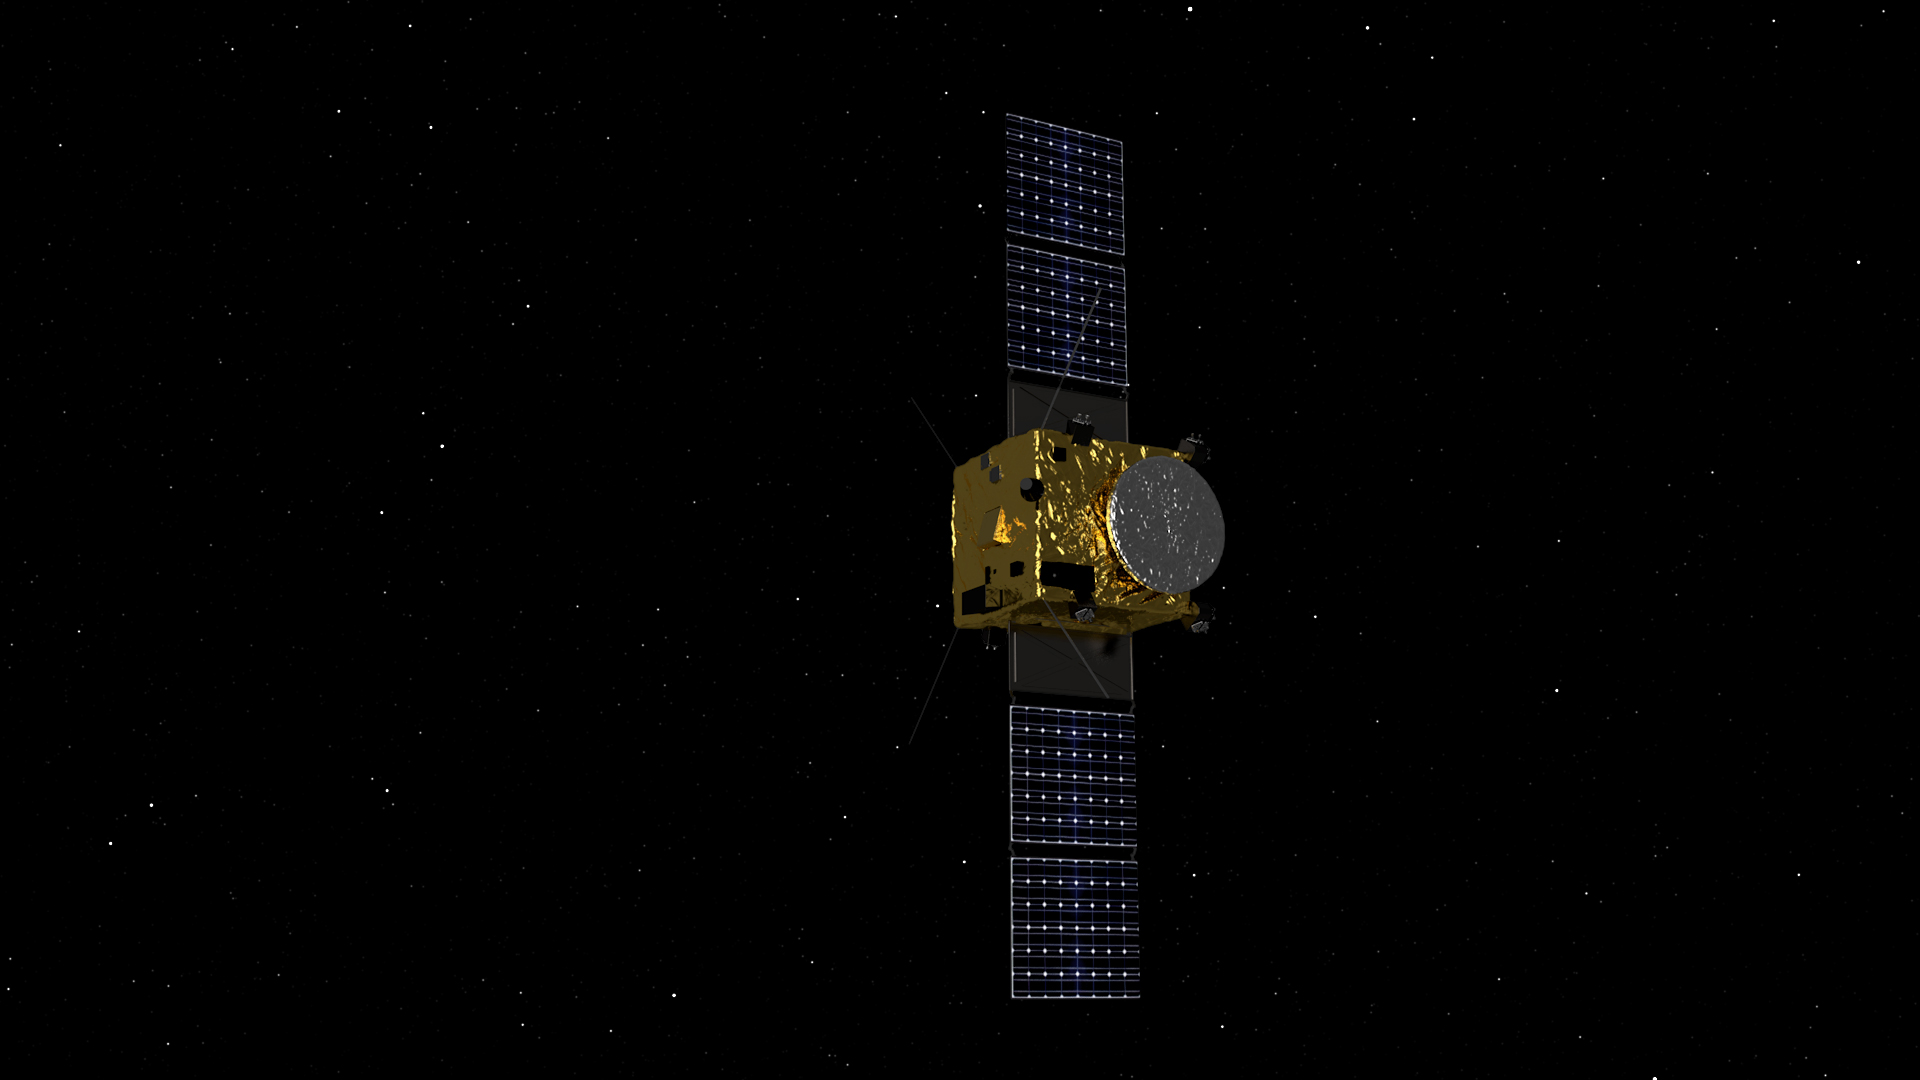 spacecraft in space - photo #16